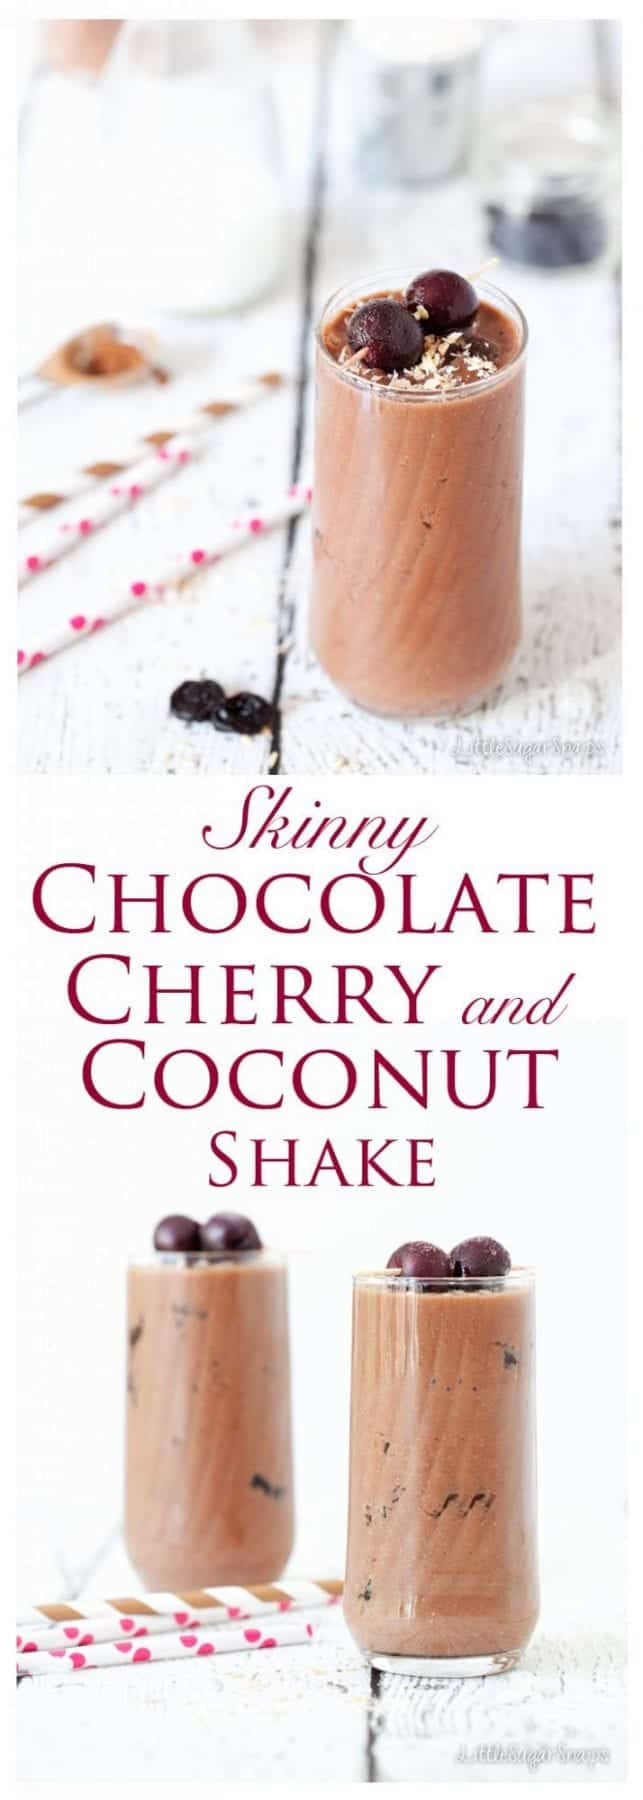 Skinny Chocolate Cherry Coconut Shake: Black Forest Gâteau meets ice-cold milk. Thick, luxurious, decadent AND healthy. Summertime drinks don't have to be laden with calories to be cool.